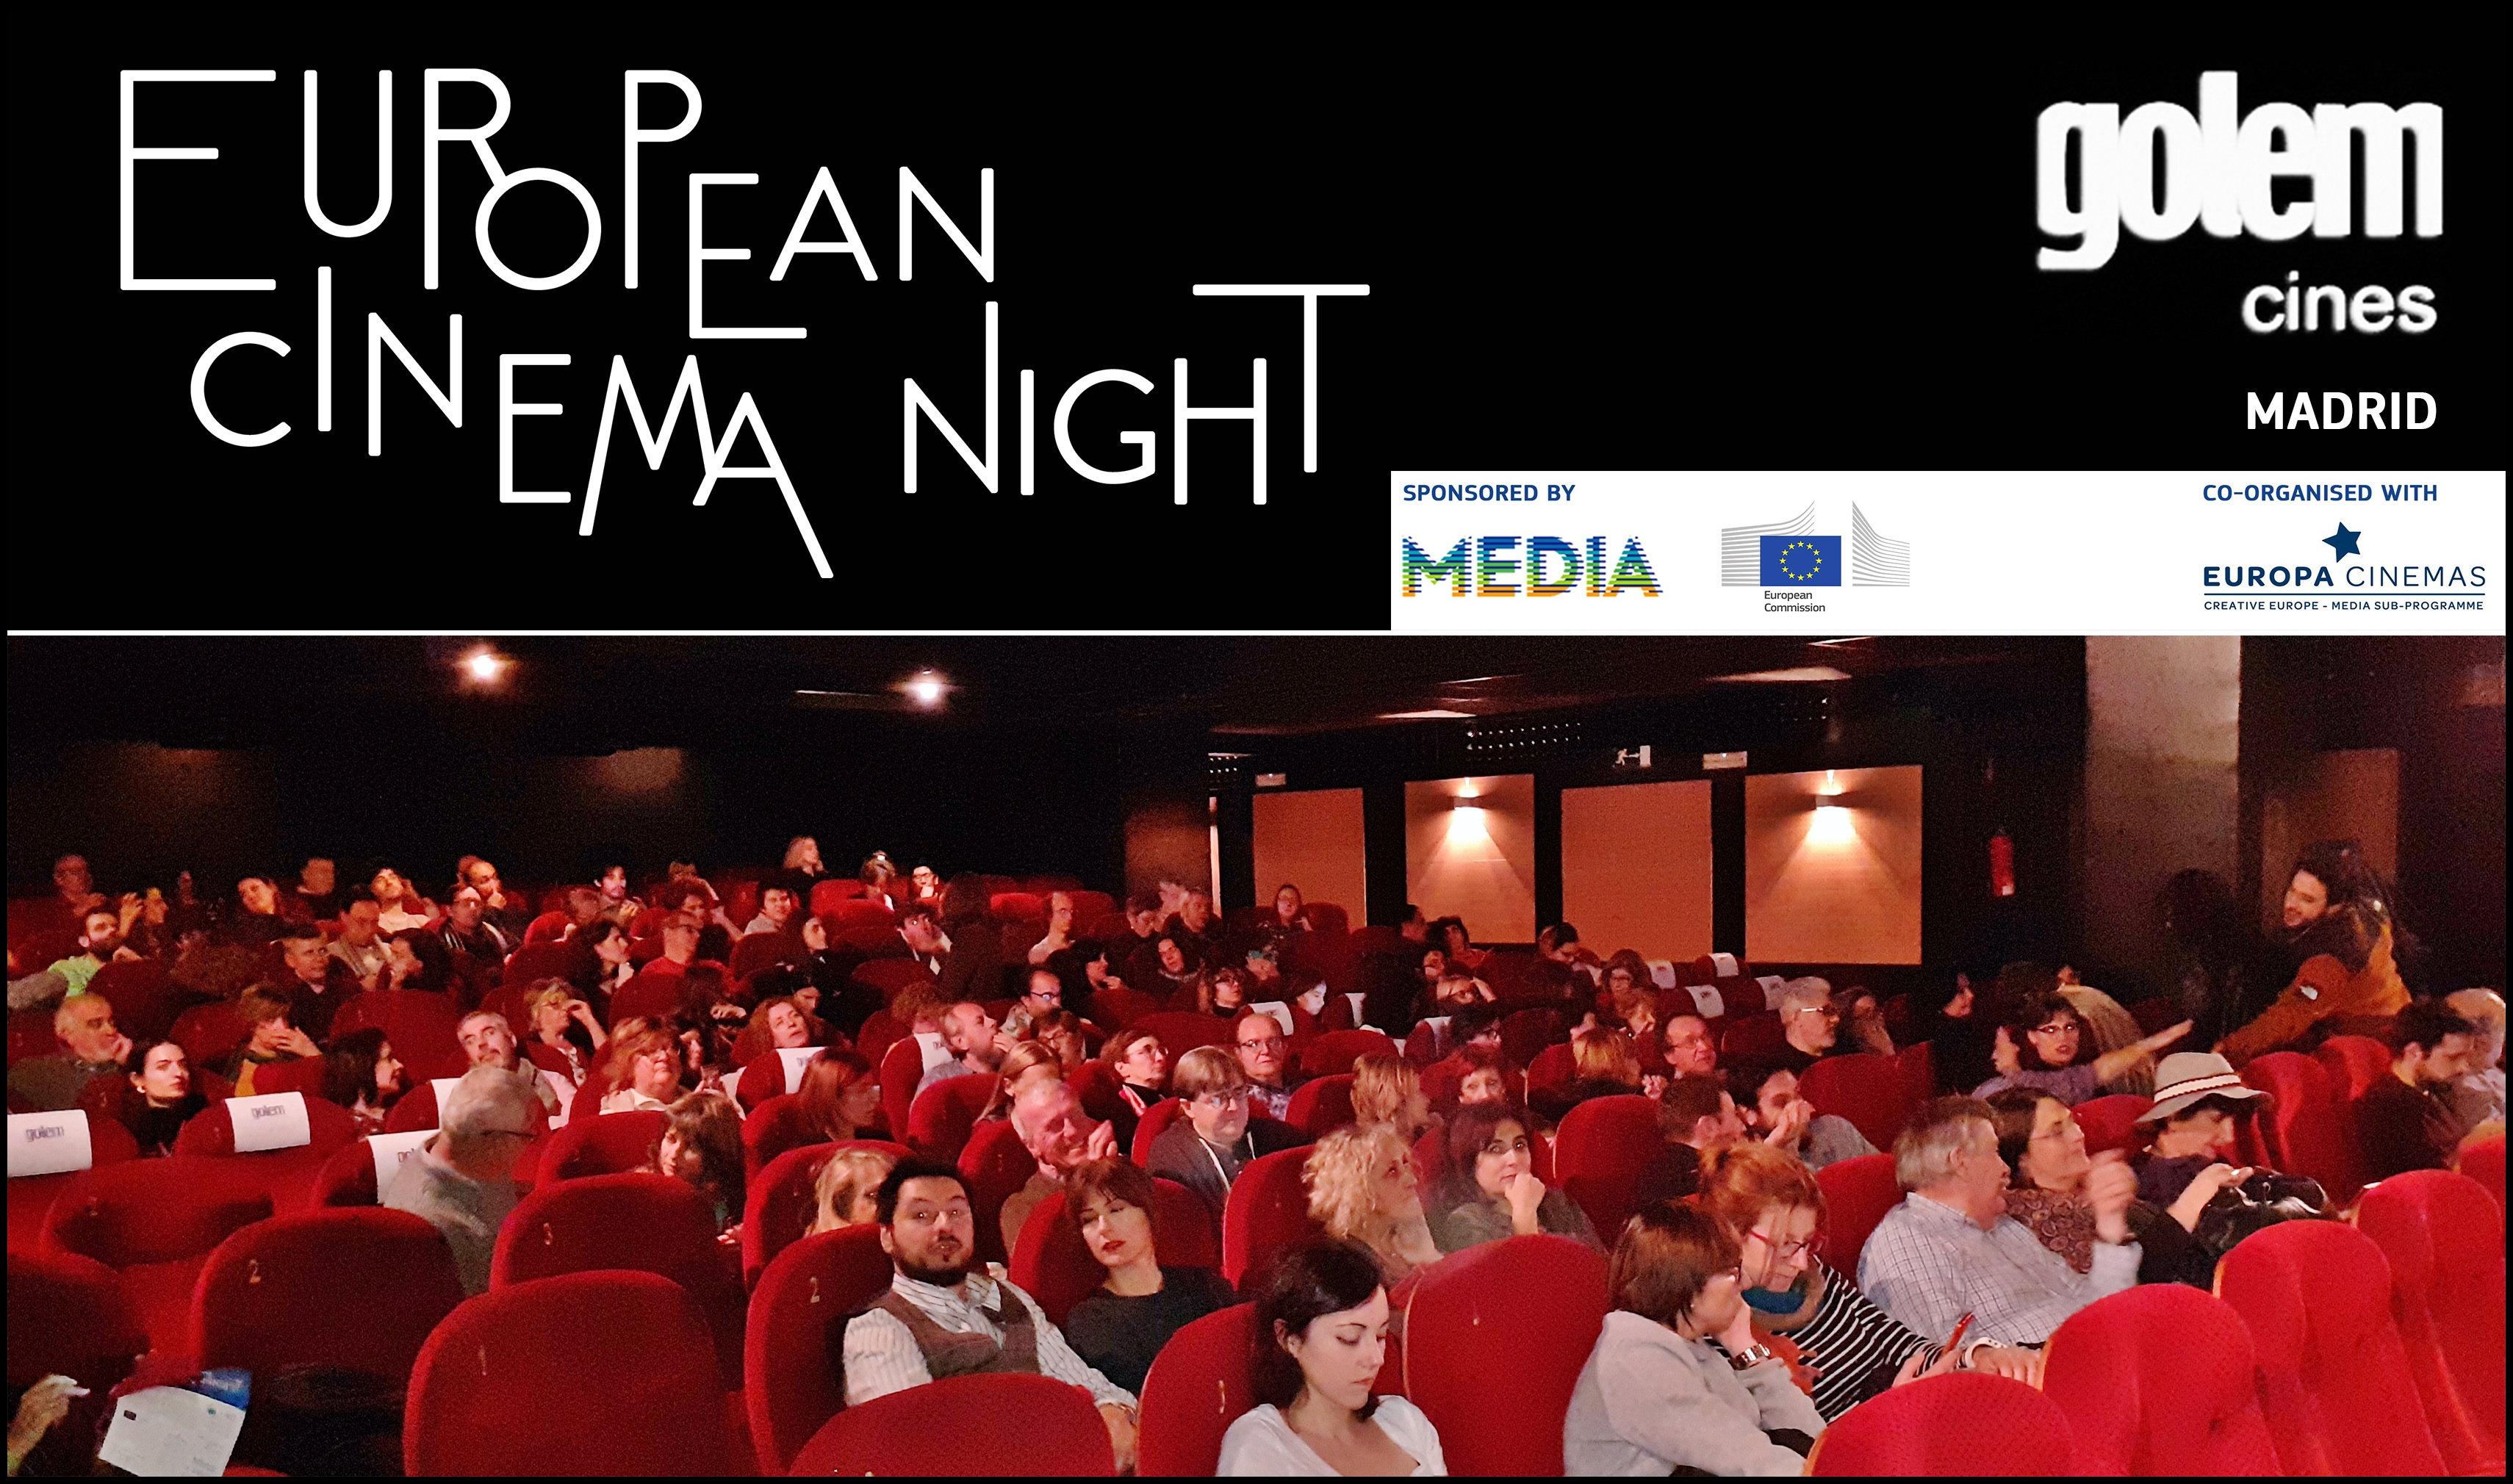 EUROPEAN CINEMA NIGHT: Recordamos su segunda edición en España